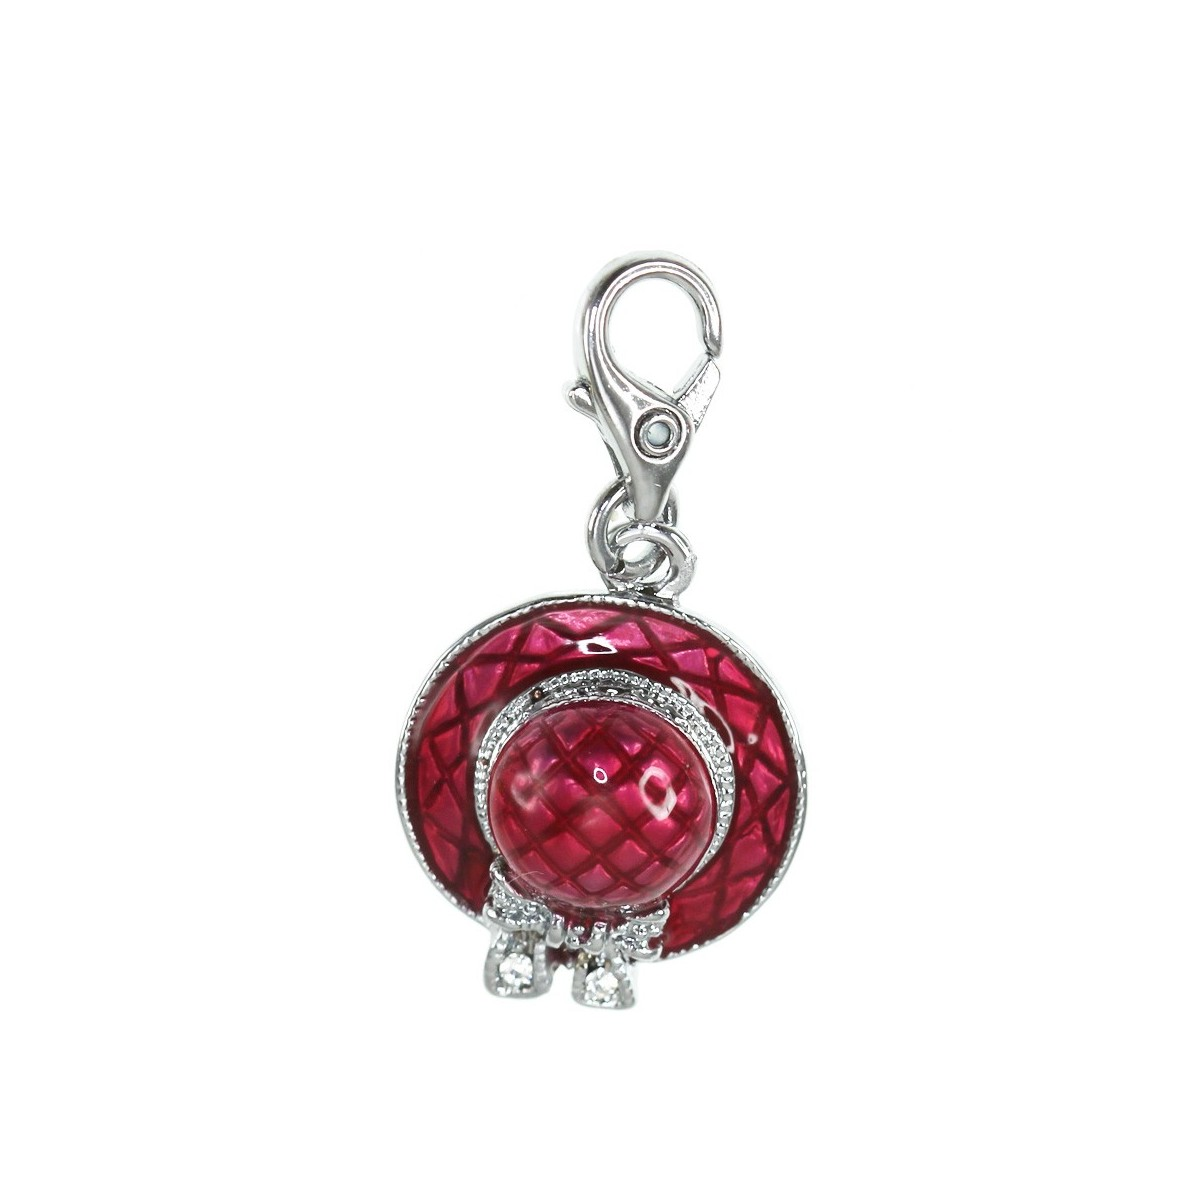 CH1020S Charm chapeau rouge So Charm made with Crystal from Swarovski